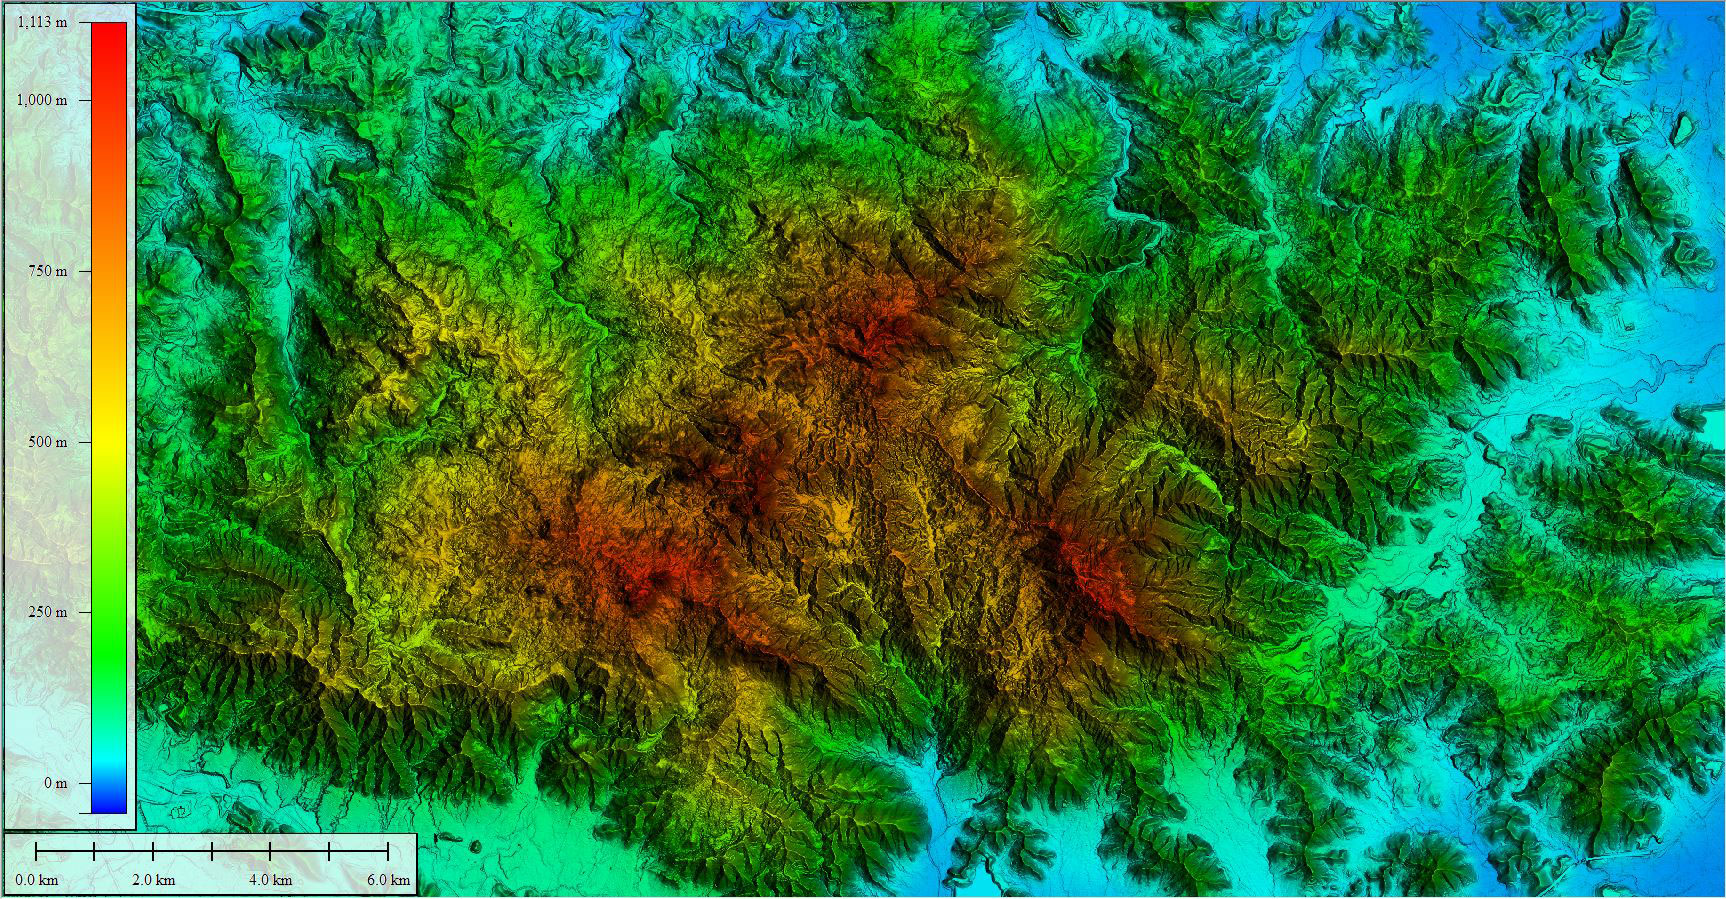 Digital Elevation Model of El Yunque National Forest produced from 2016 topographic lidar data. Photo courtesy of Dewberry.